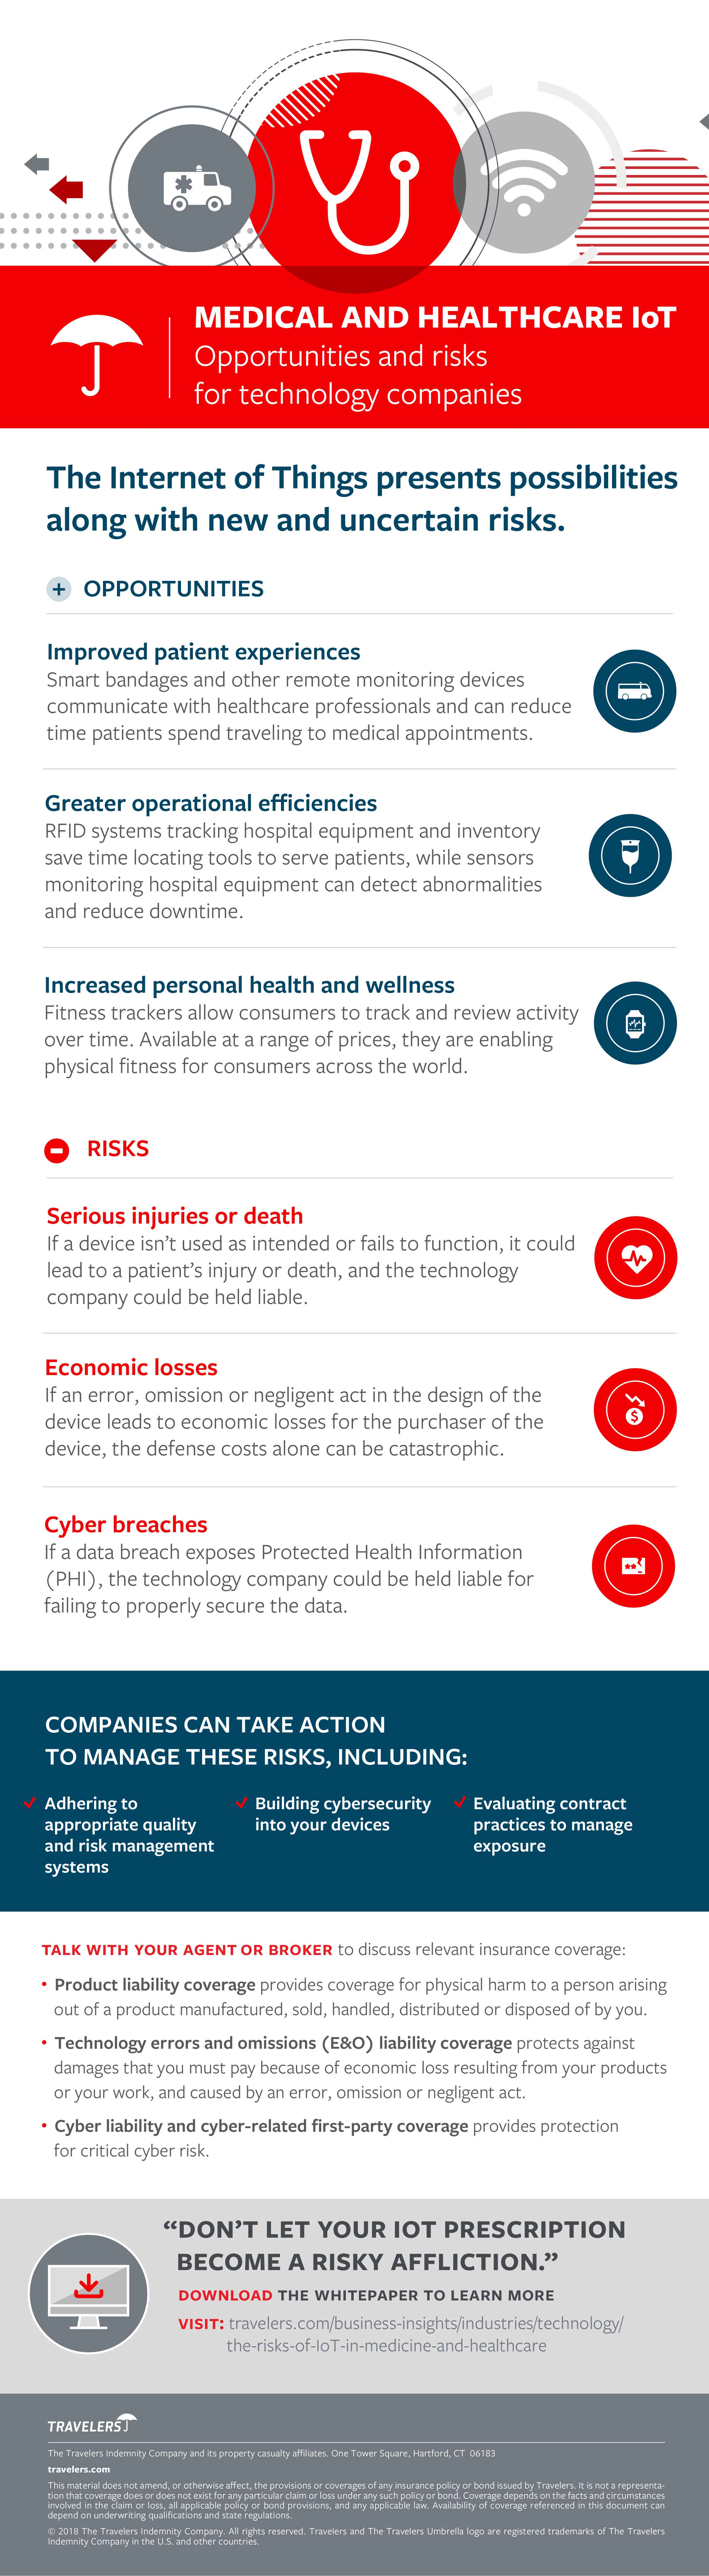 Medical and Healthcare IoT Infographic